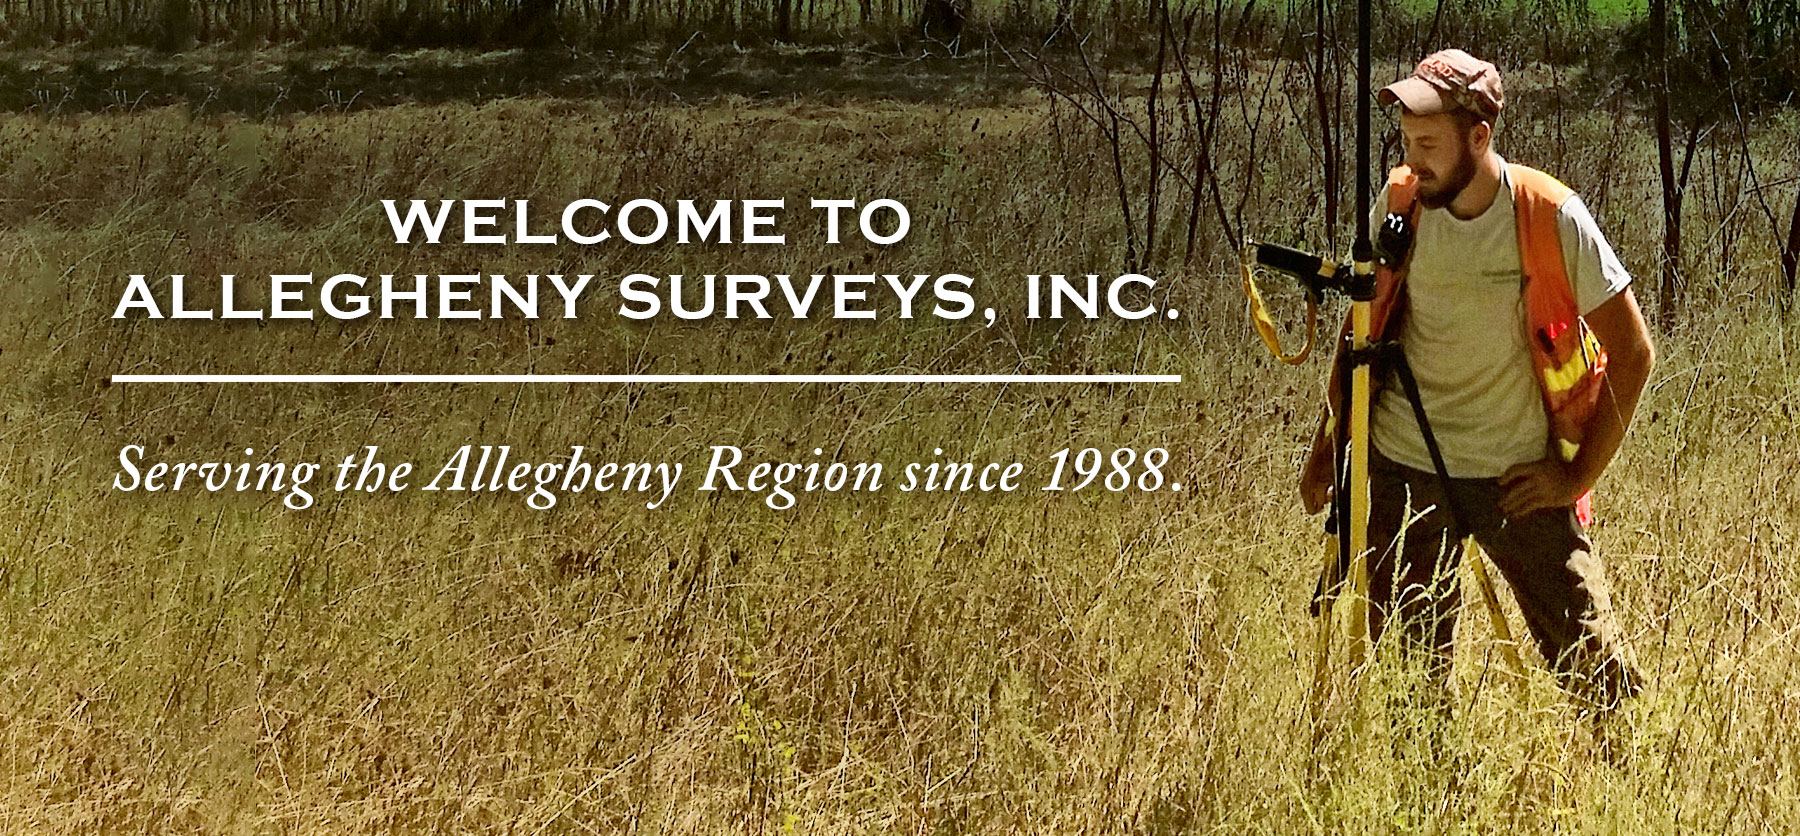 Welcome to Allegheny Surveys, Inc.